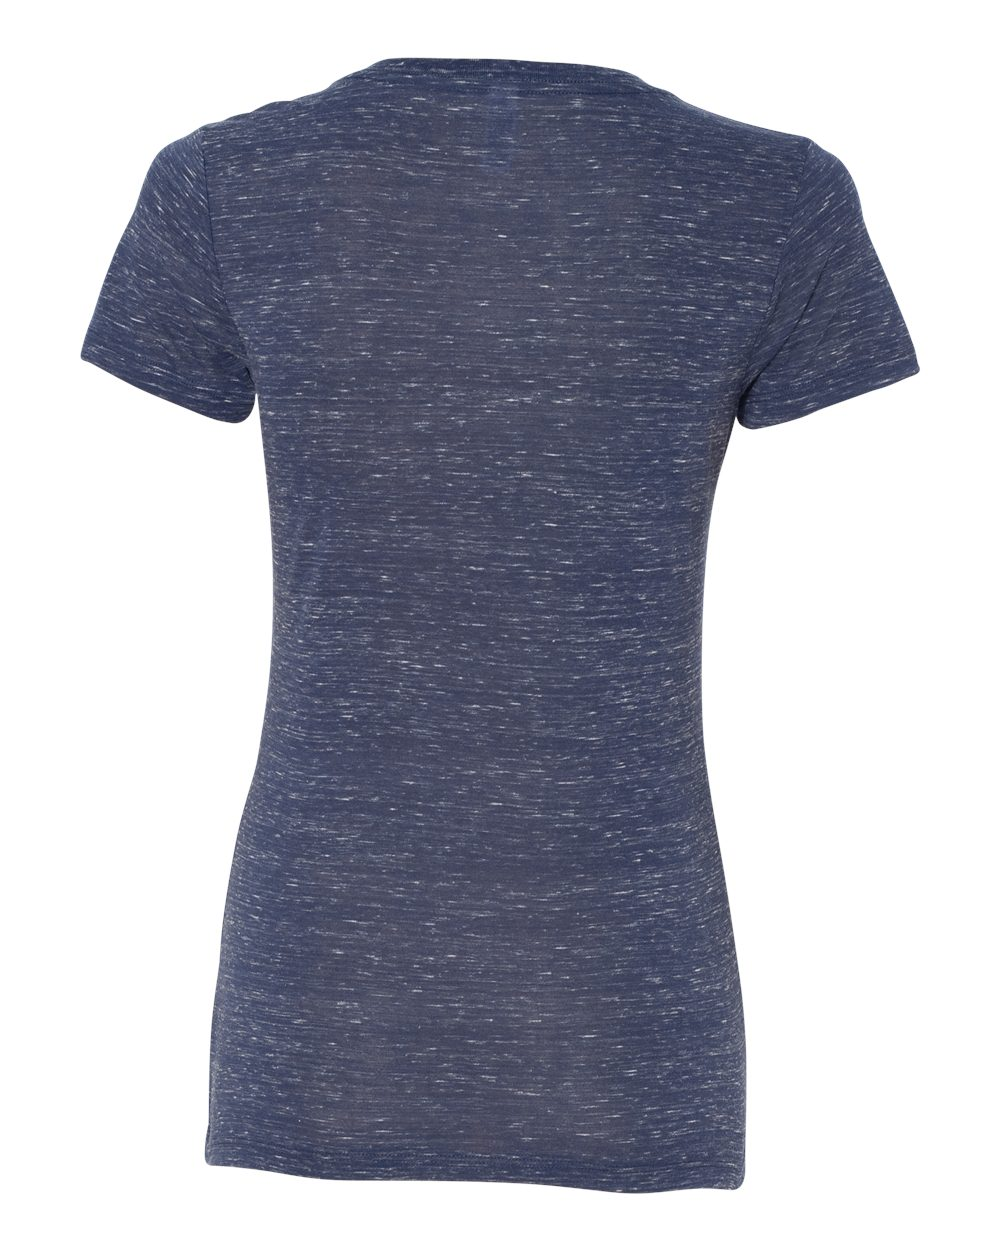 Bella-Canvas-Women-039-s-Jersey-Short-Sleeve-Deep-V-Neck-T-Shirt-B6035-S-2XL thumbnail 31